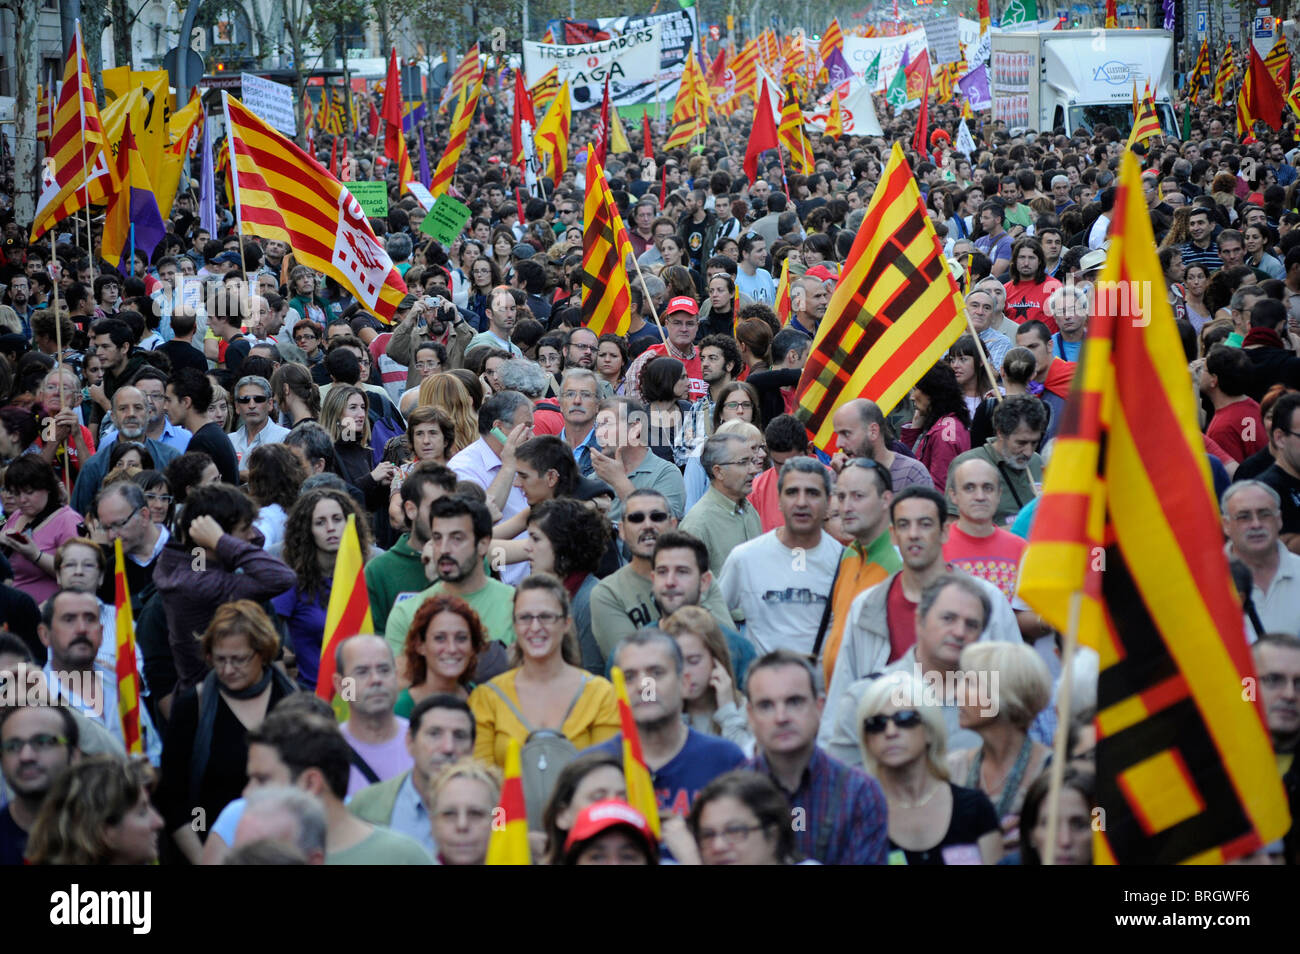 Strike demonstration across Barcelona to protest the government's labor reforms and austerity measures.Spain. - Stock Image